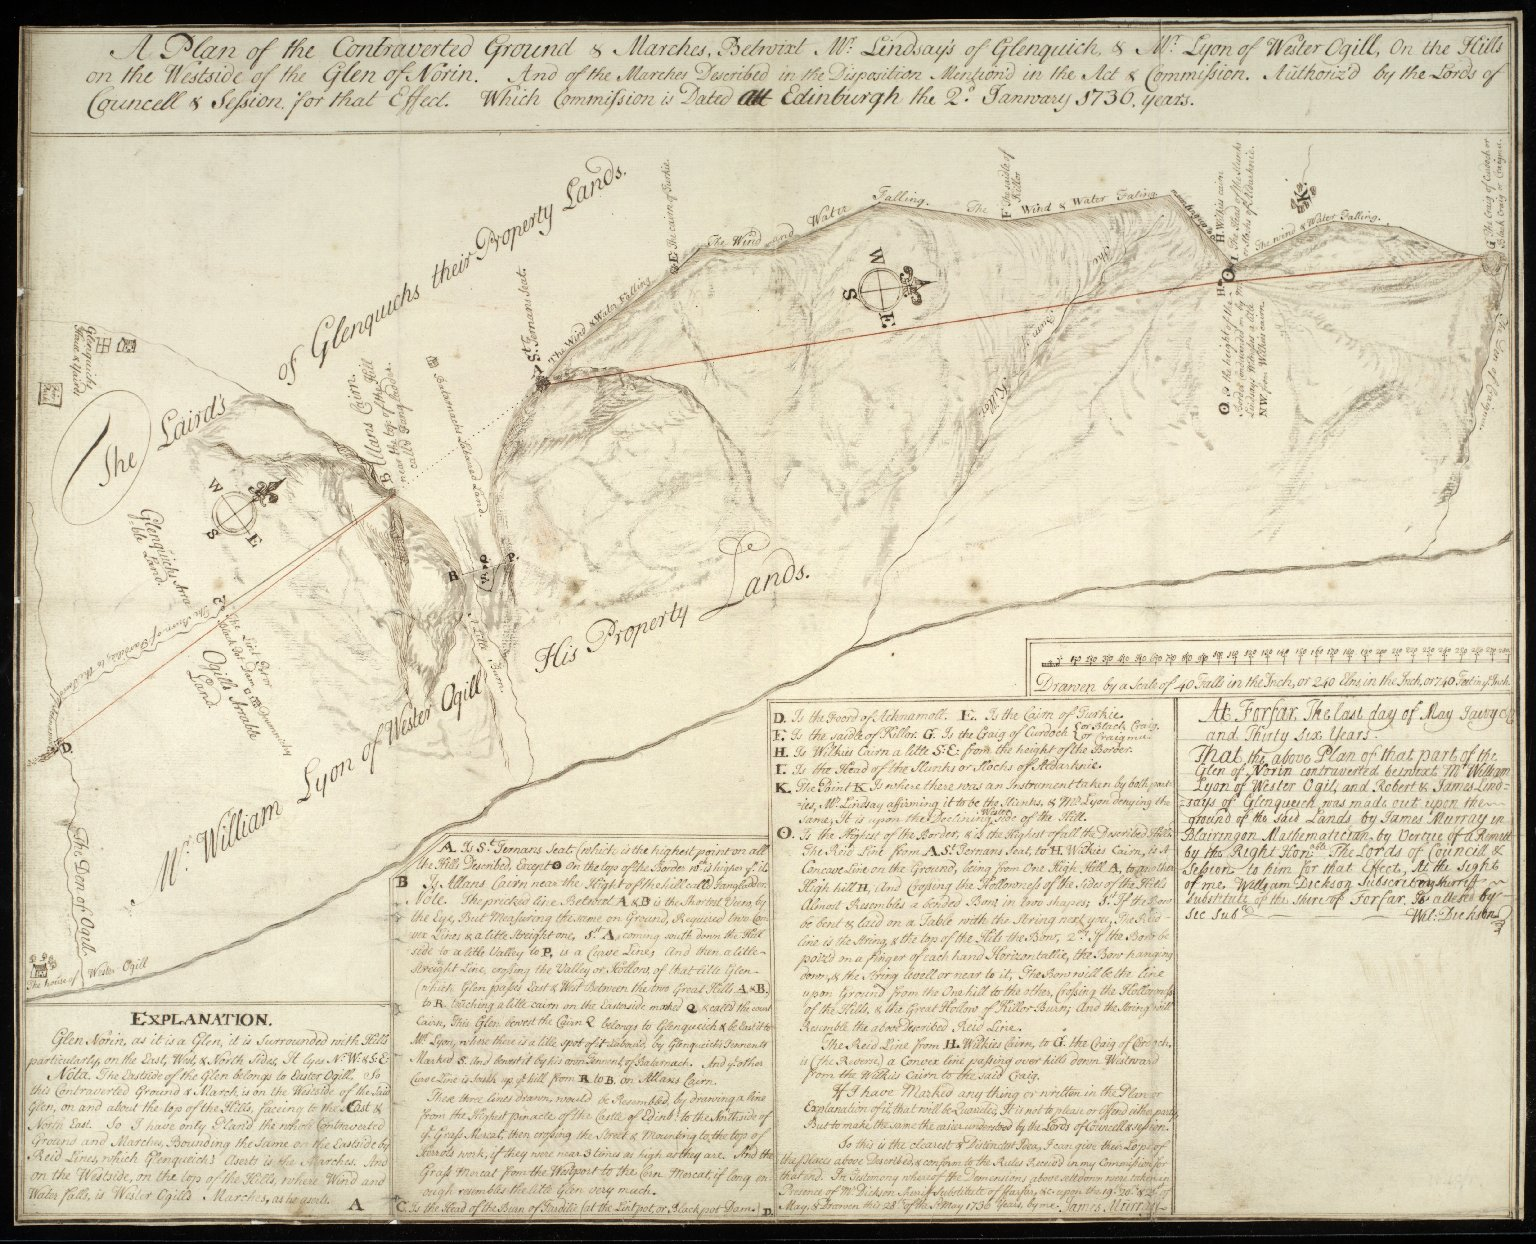 A Plan of the Controverted Ground & Marches Betwixt Mr. Lindsay's of Glenquich & Mr. Lyon of Wester Ogill, on the Hills on the Westside of Glen Norin And of the Marches described in the Disposition Mention'd in the Act & Commission [1 of 1]